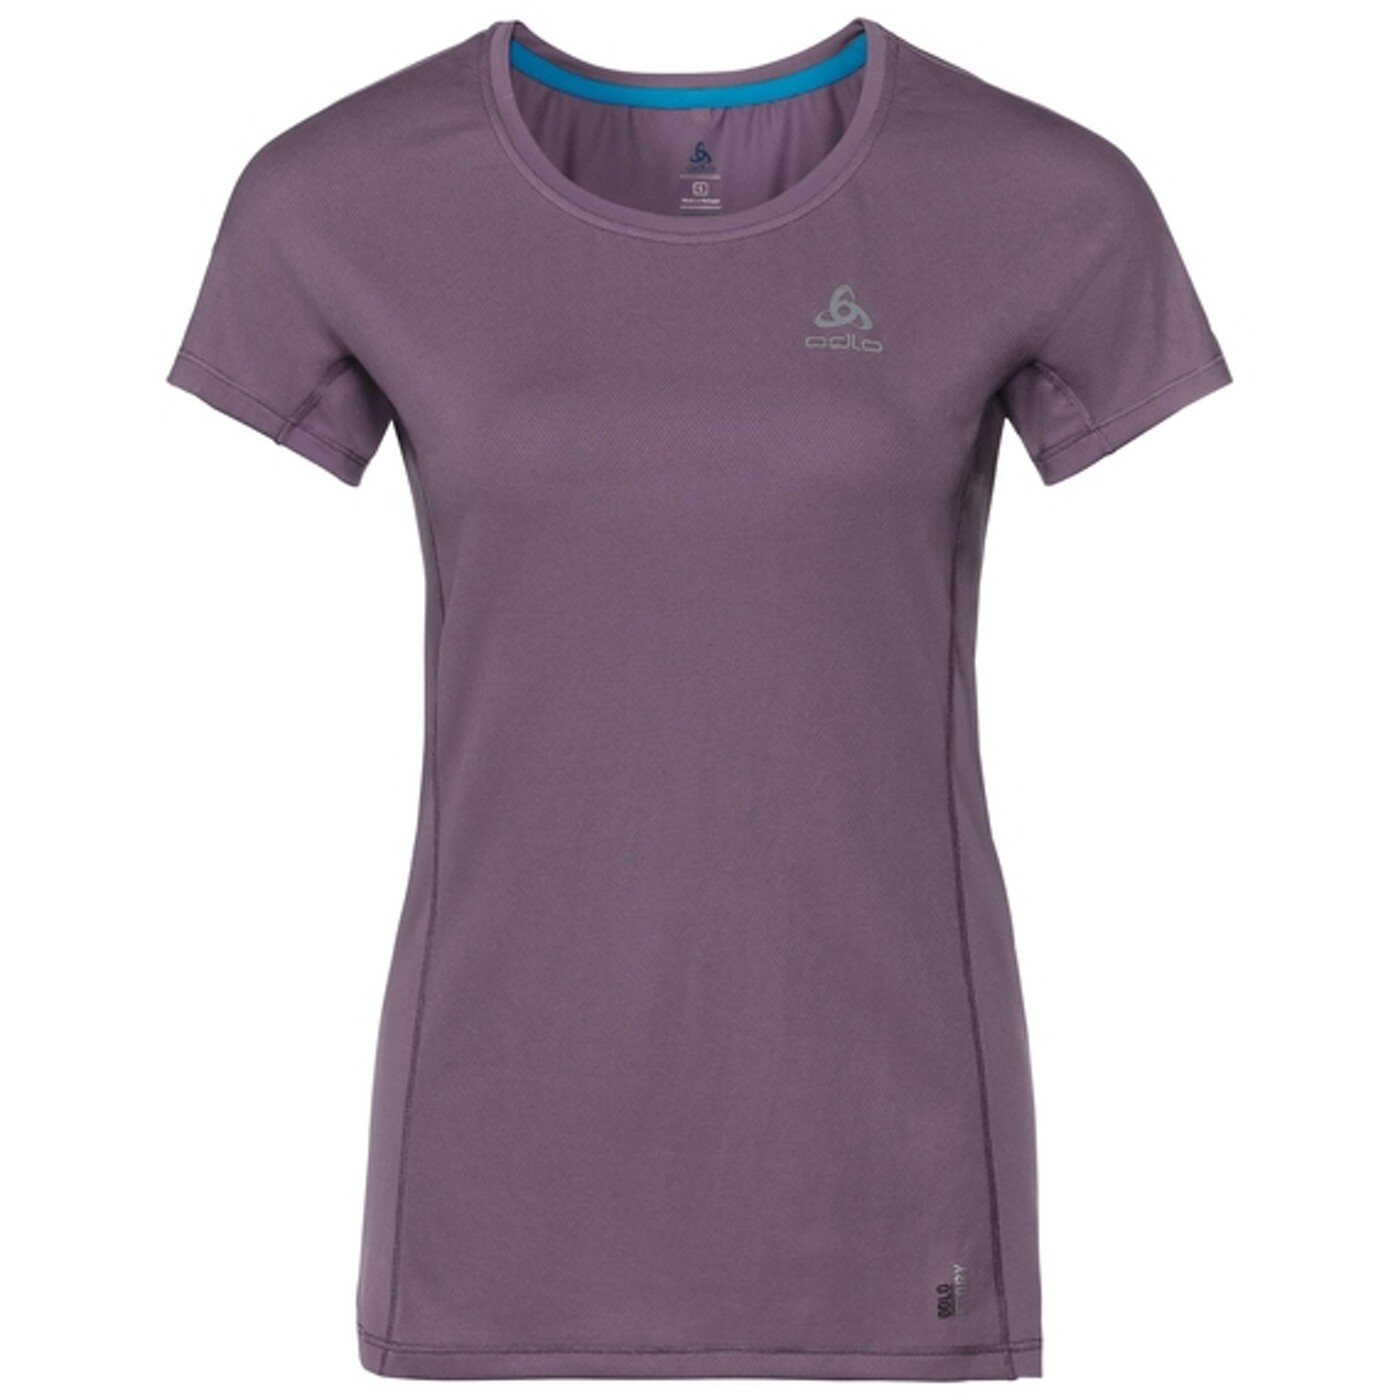 ODLO BL TOP Crew neck s/s OMNIUS LI - Damen